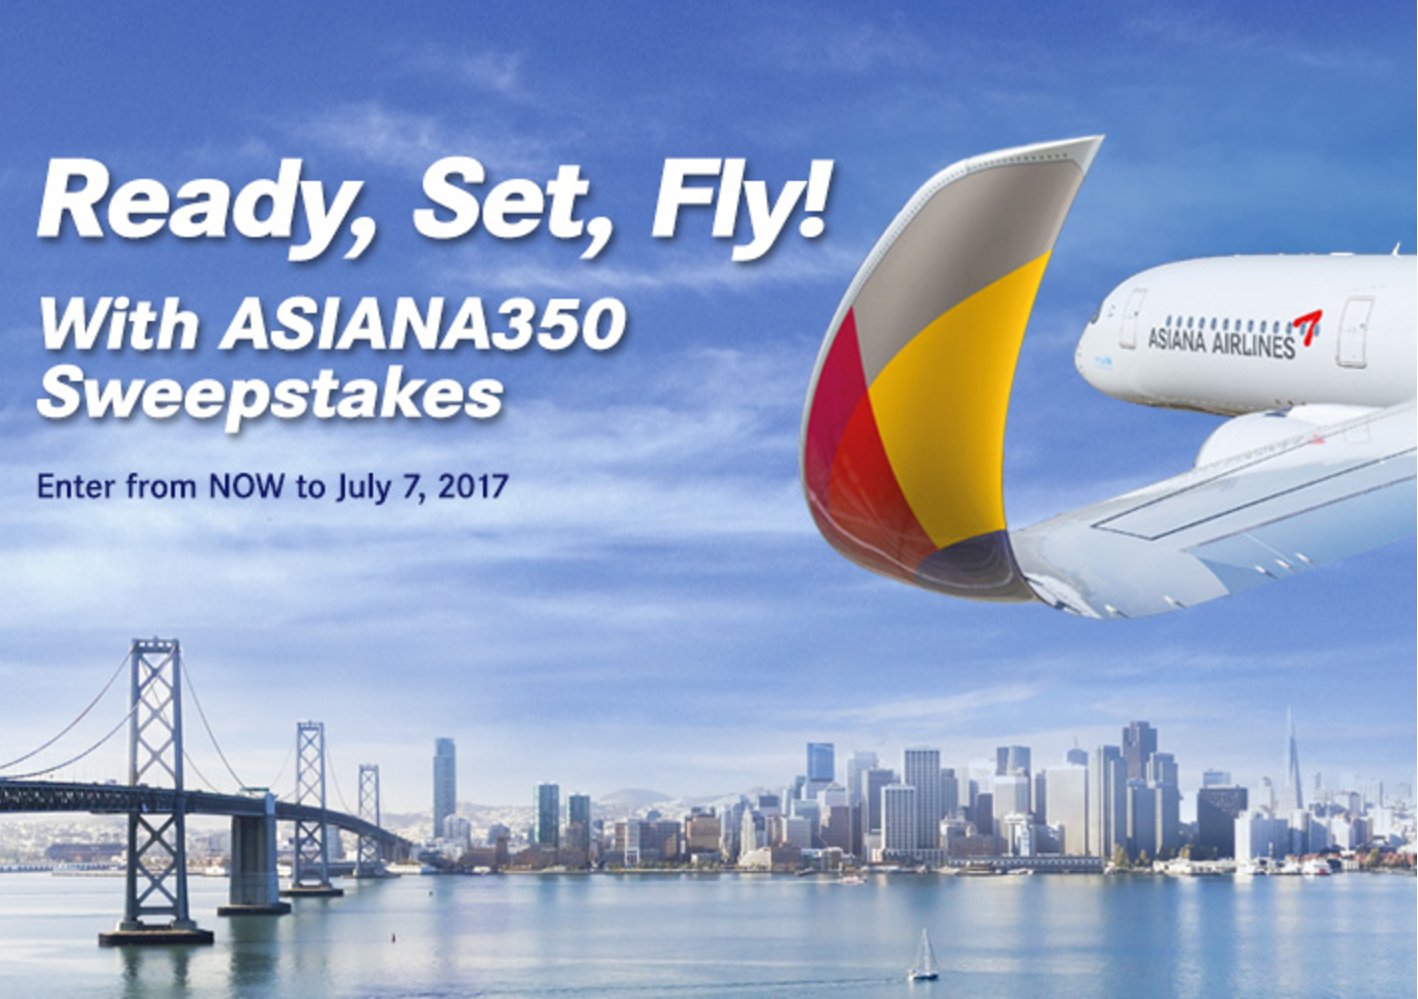 Ready, Set, Fly! With Asiana350 Sweepstakes